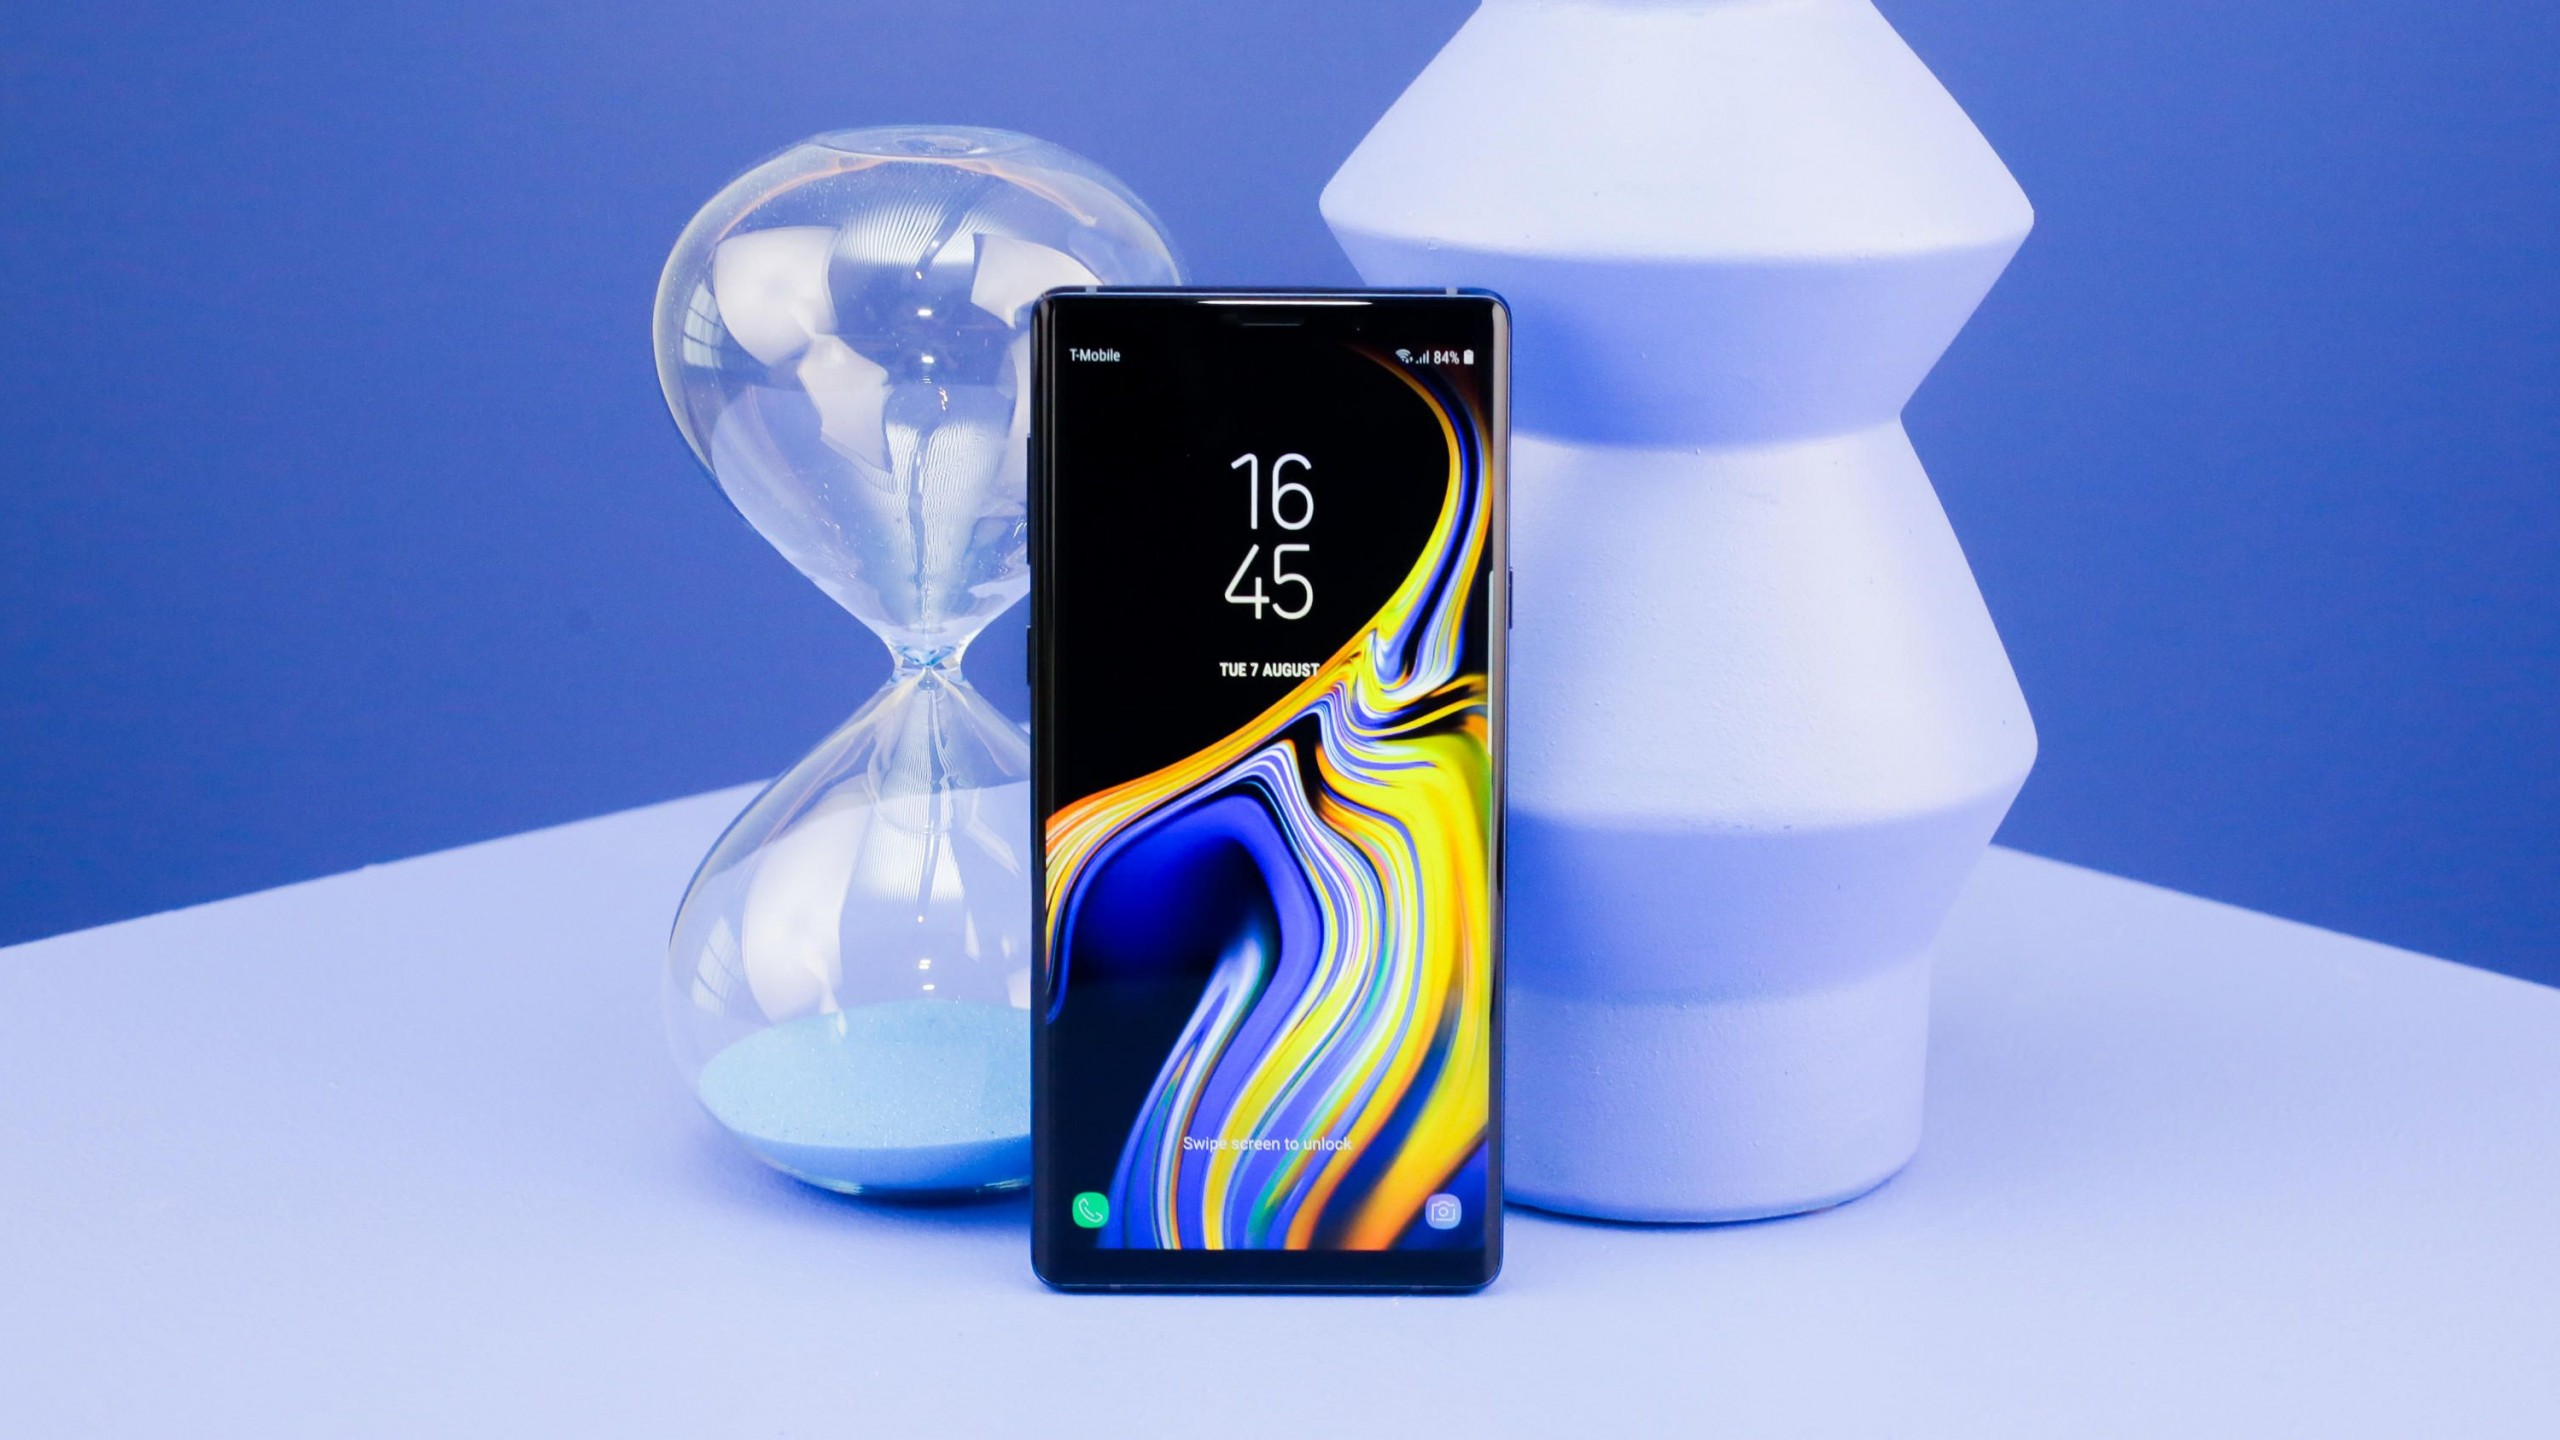 Wallpaper Samsung Galaxy Note 9 Android 8 0 Android Oreo